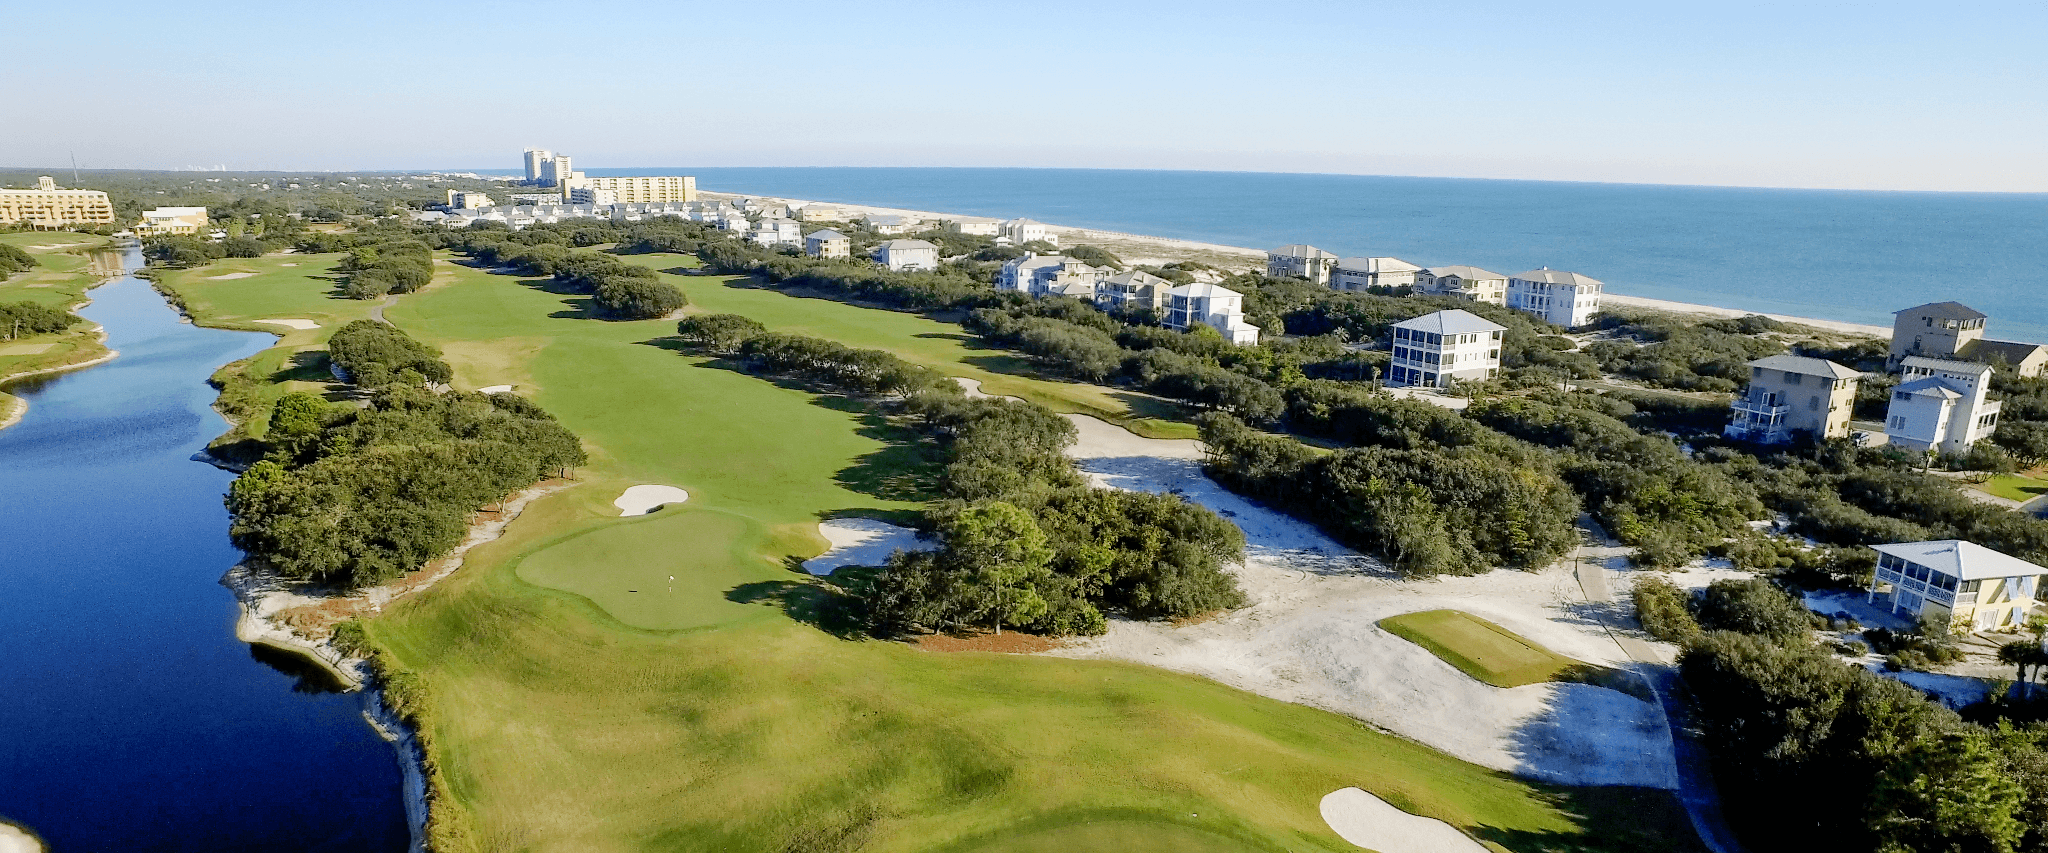 Kiva Dunes Resort and Golf Gulf Shores, AL